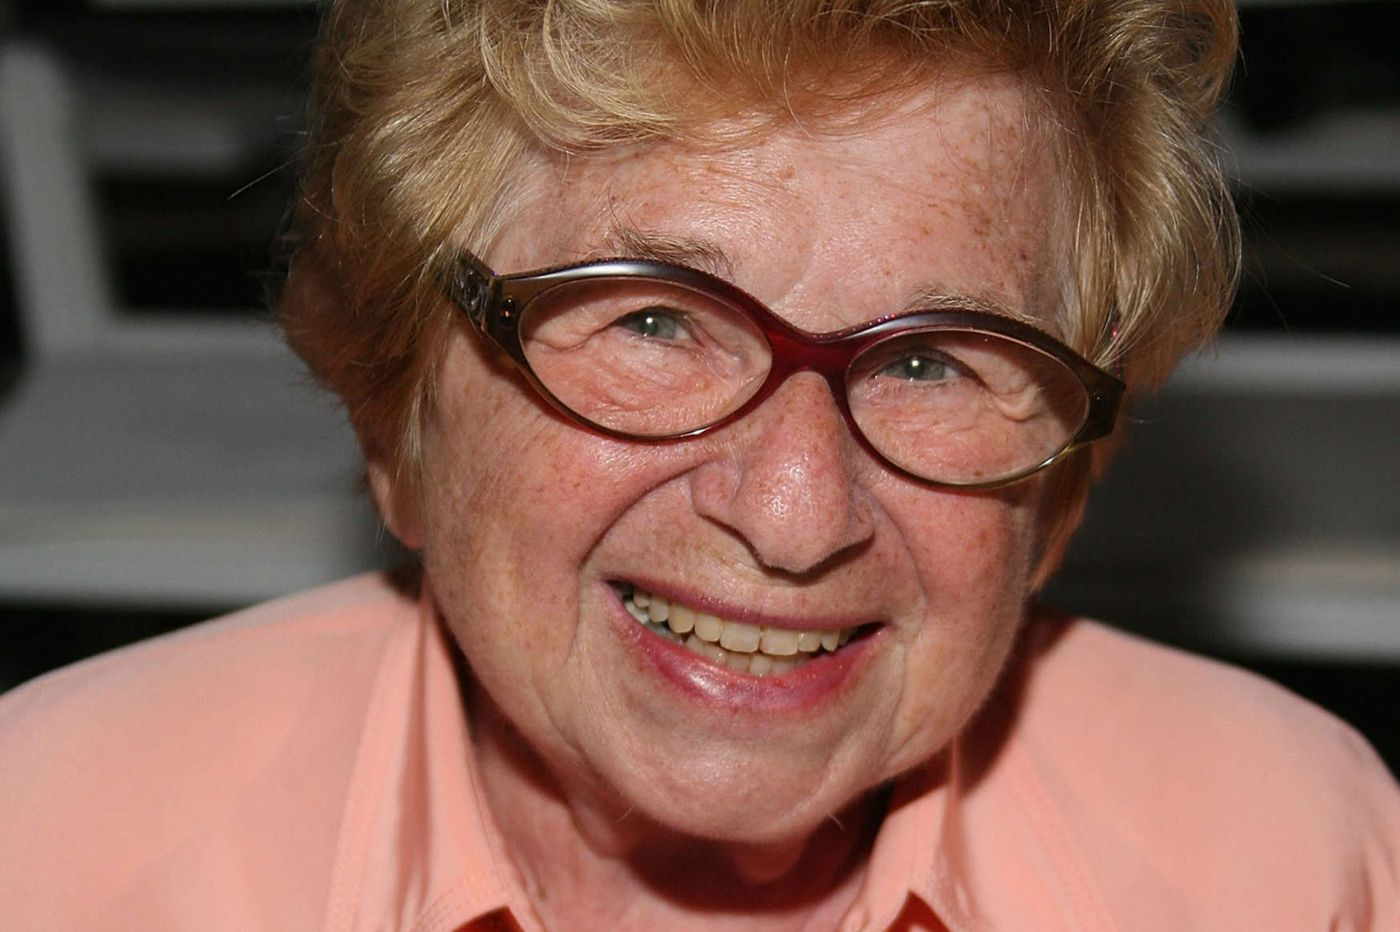 Why sex expert Dr. Ruth will be hiding in plain sight in a Philly suburb tonight